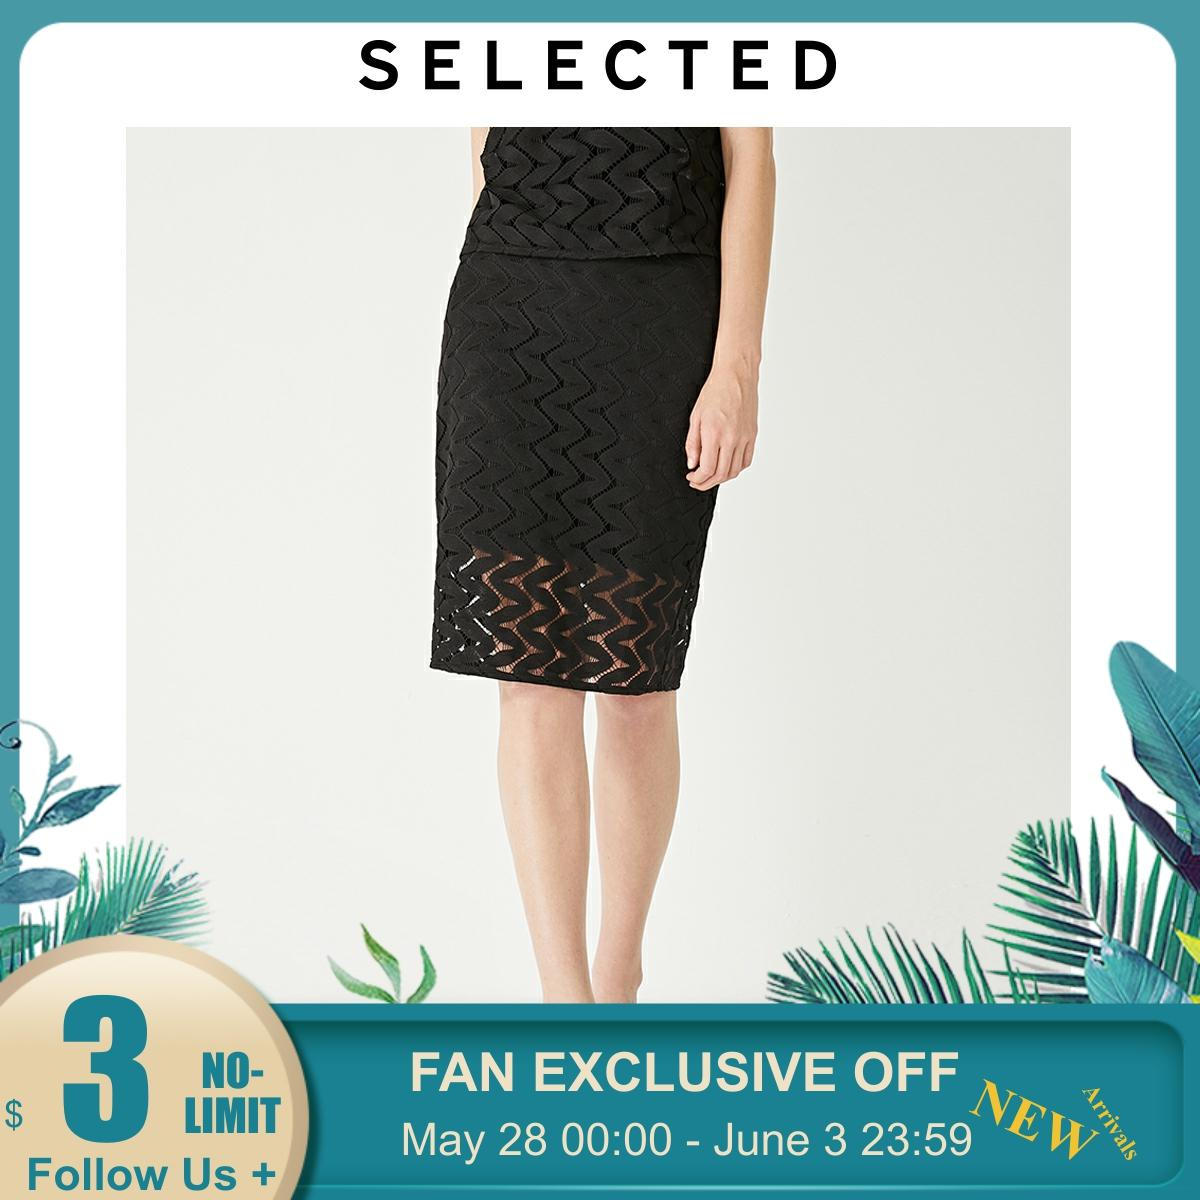 SELECTED Women's Hollow Lace Straight Fit Commuter Cut-outs Skirt S|41931G501【Fan Get New Arrivals Coupons in the Description image